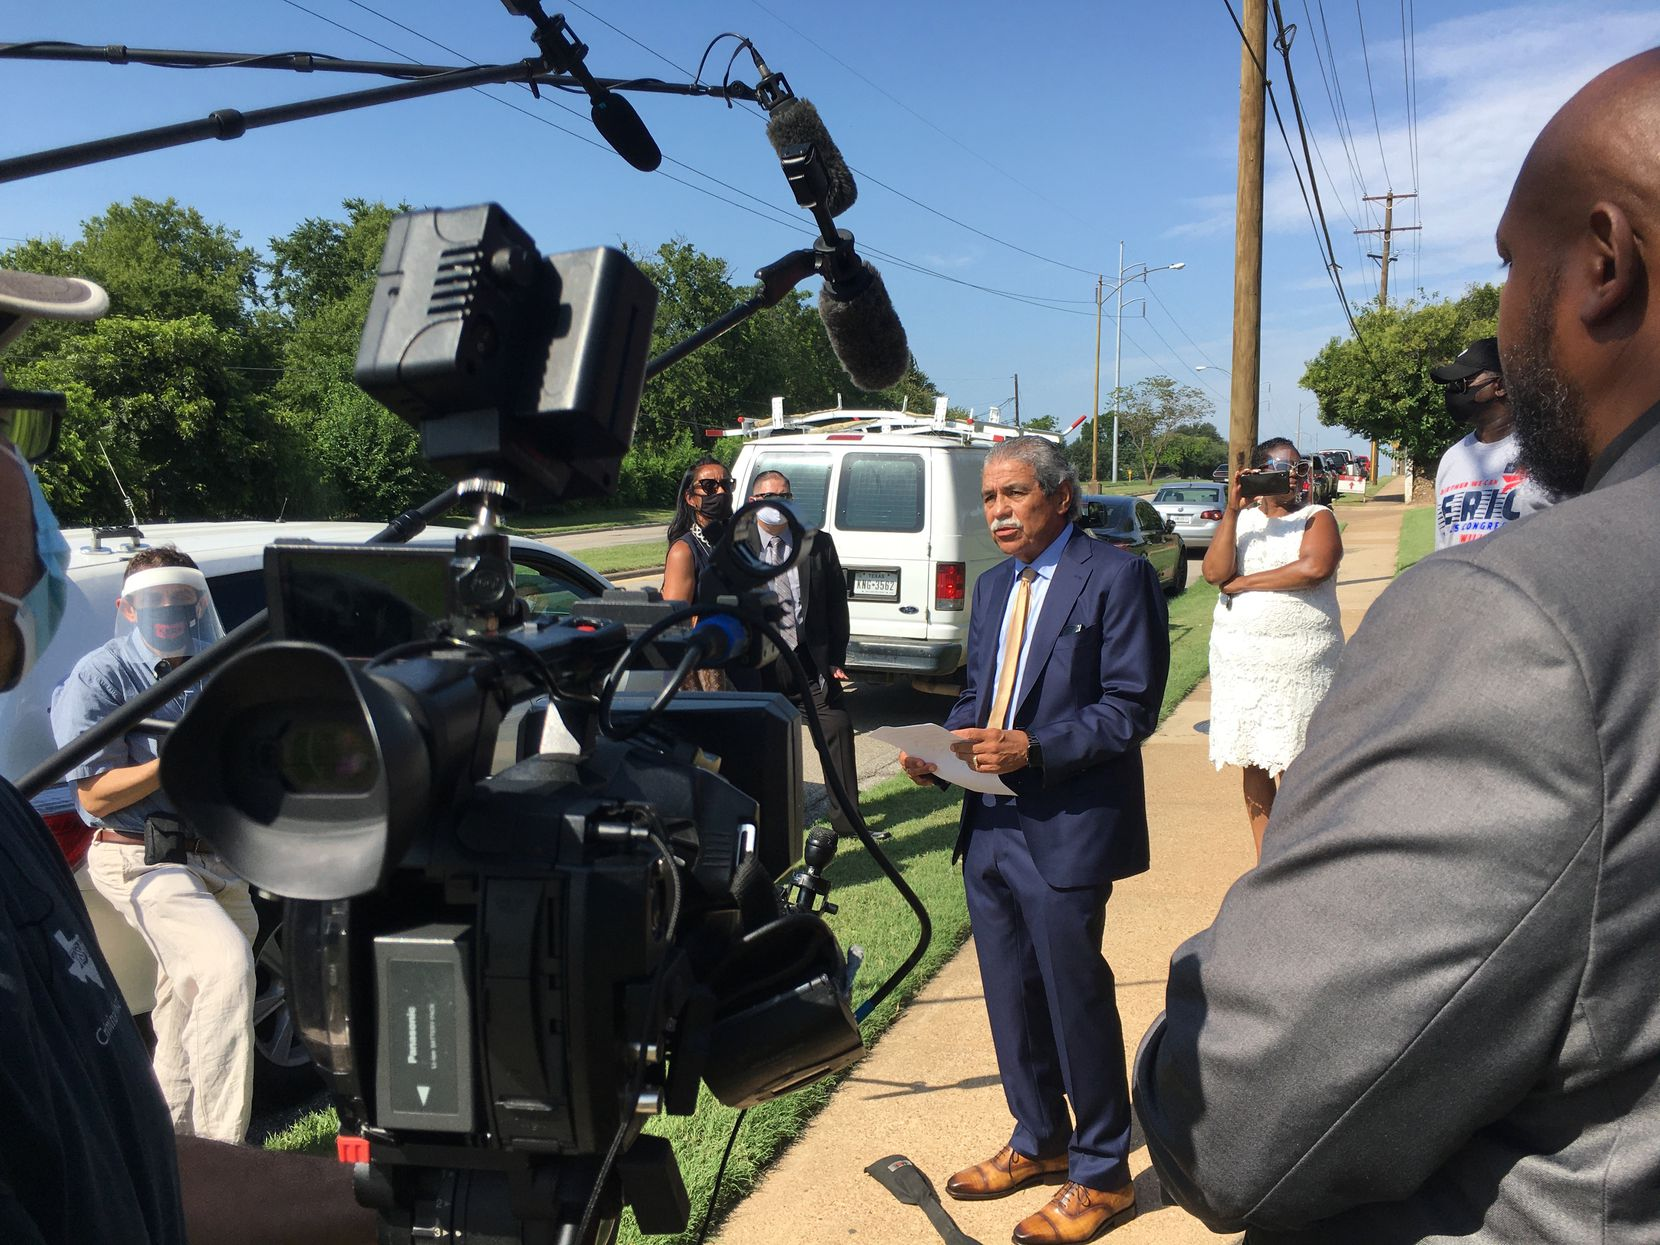 Dallas ISD Superintendent Michael Hinojosa addressed reporters July 14 while DISD trustee Maxie Johnson (right) looked on. DISD leaders opposed the placement of a charter school on the campus of Paul Quinn College in southern Dallas.